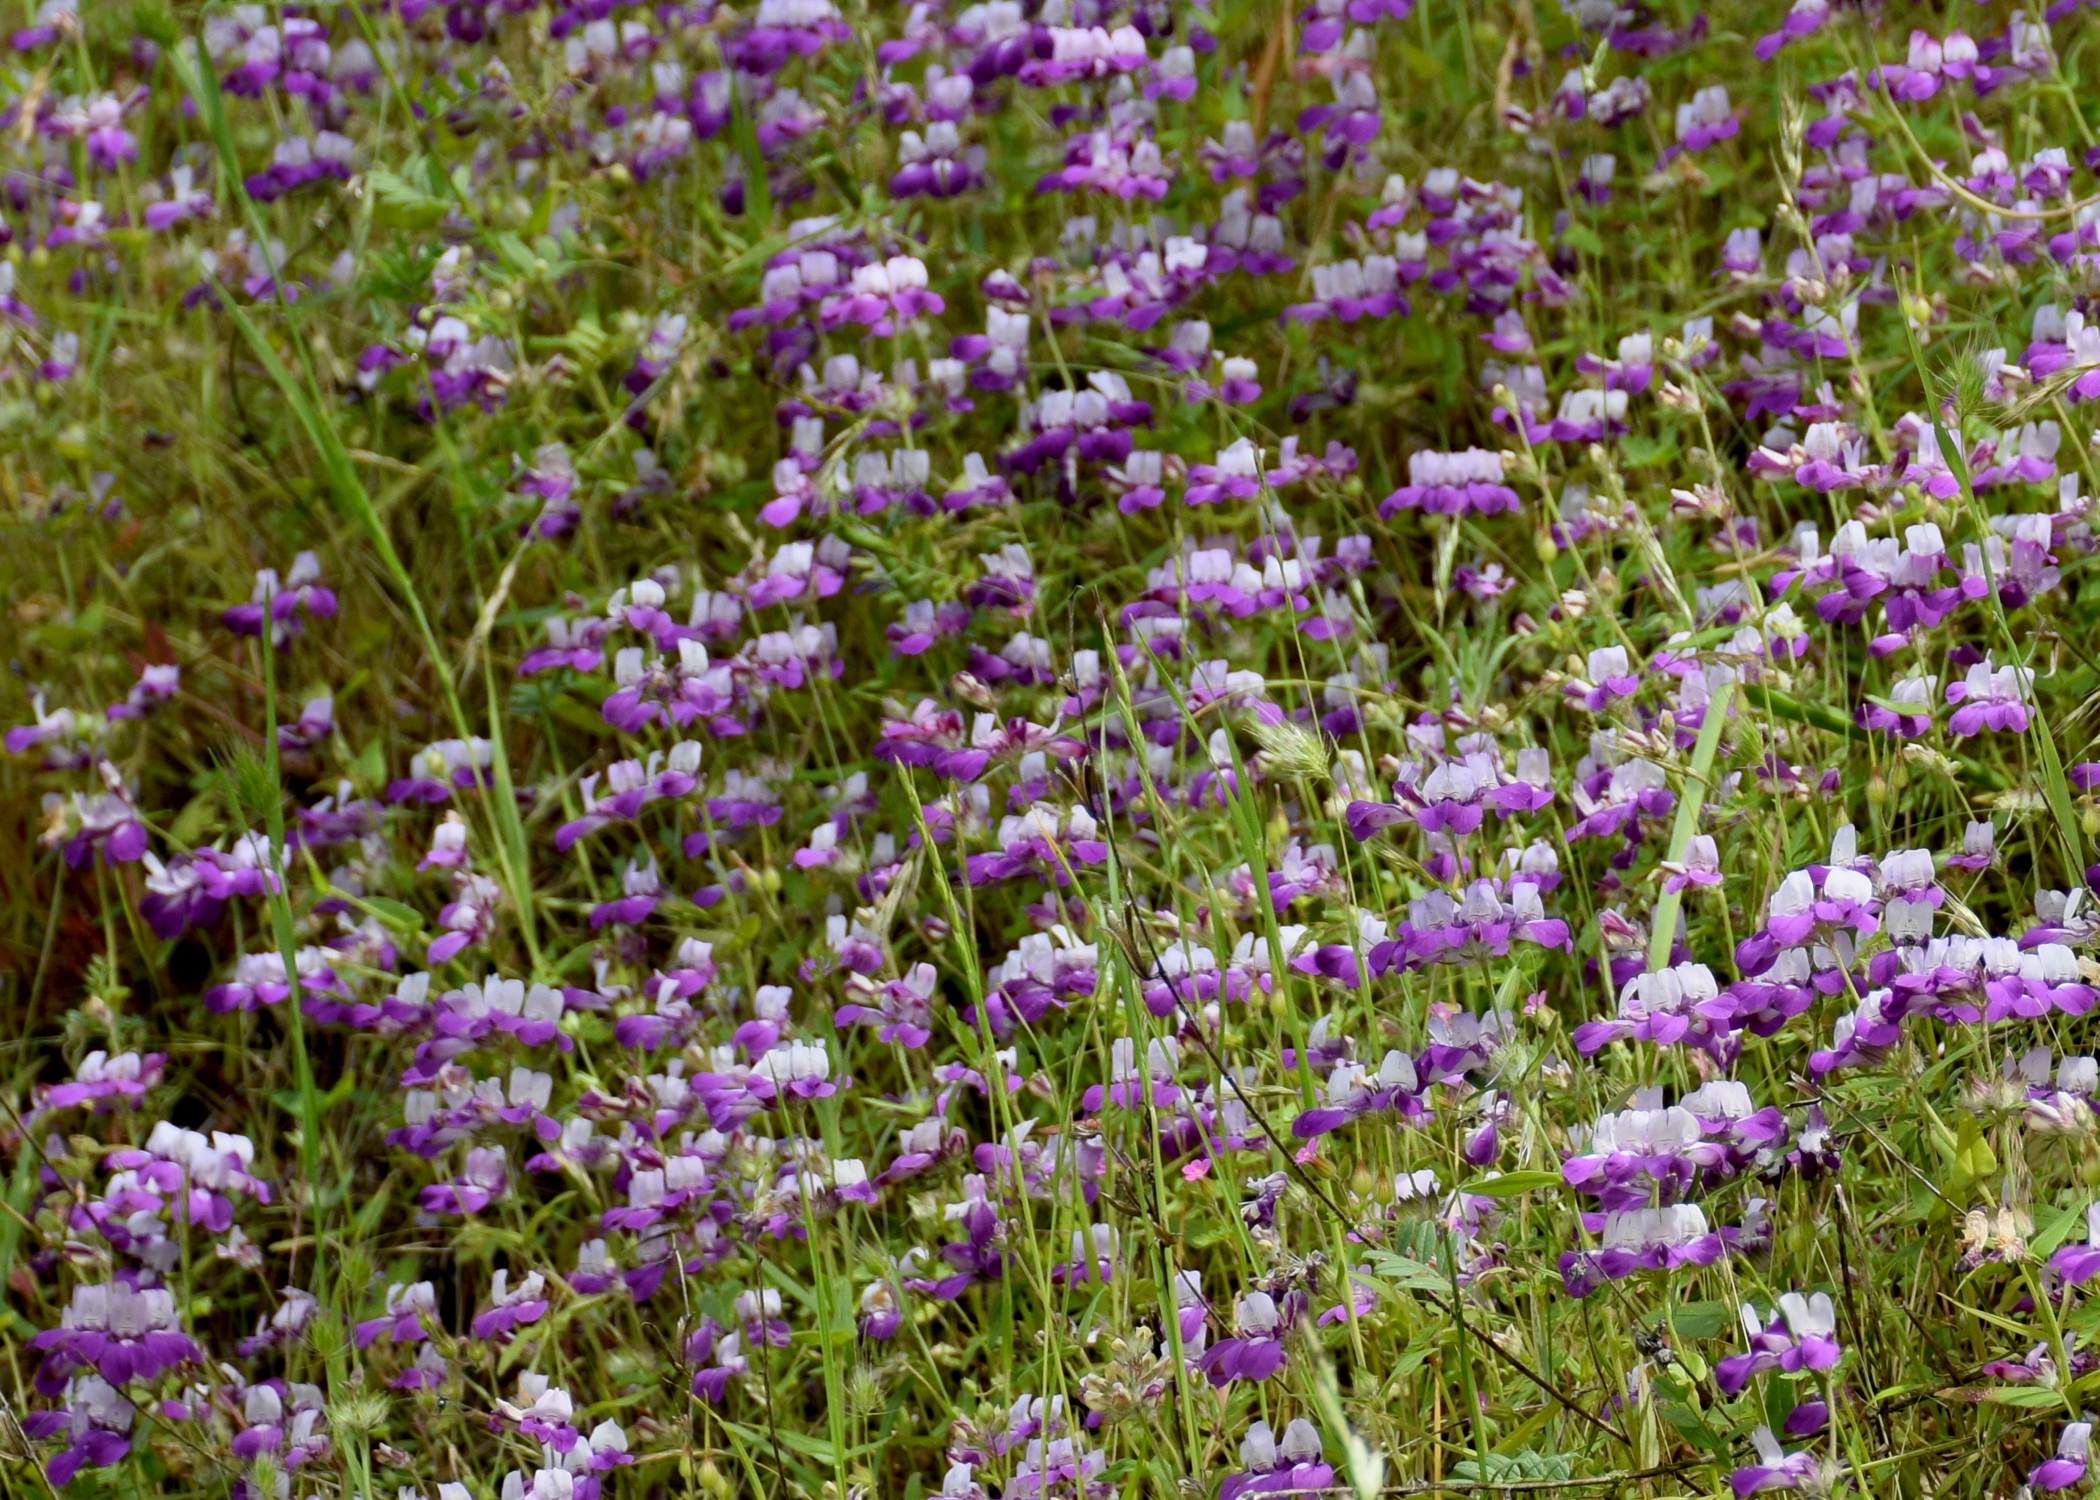 A large grouping of Collinsia heterophylla, Chinese Houses